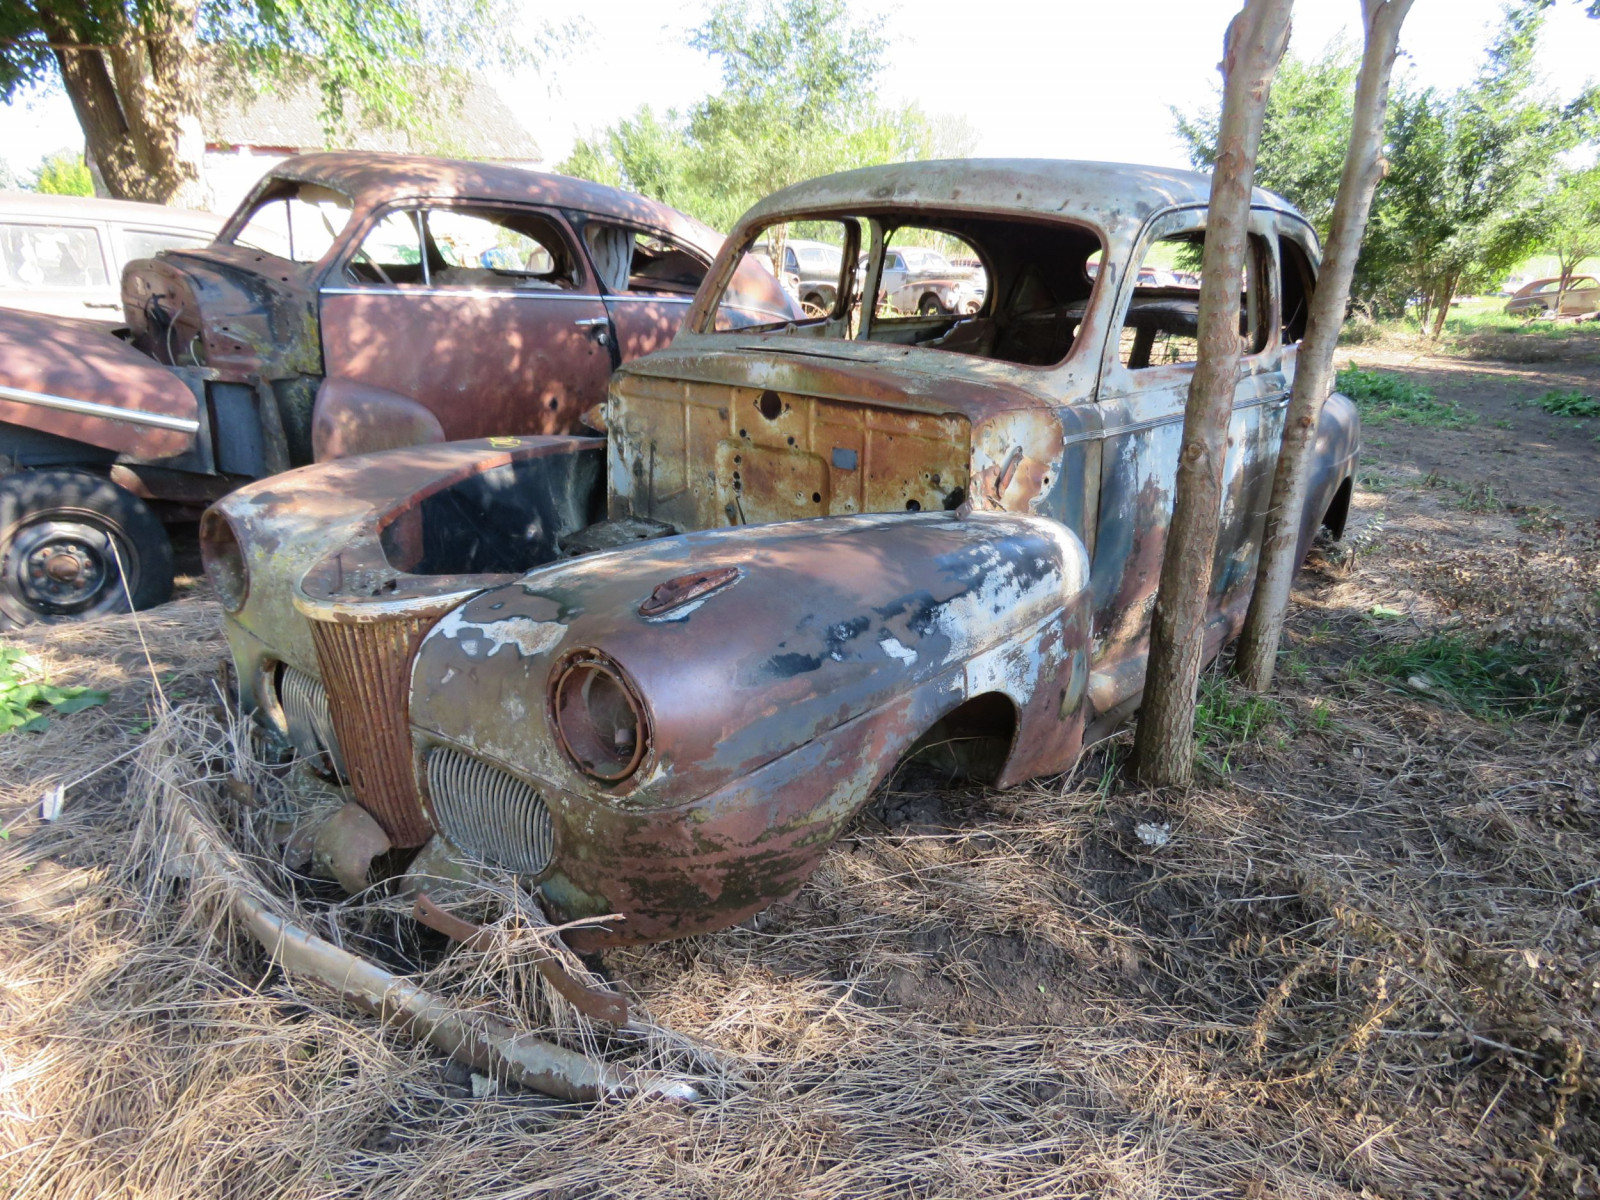 1941 Ford 2dr Sedan Body for Project or Parts - Image 2